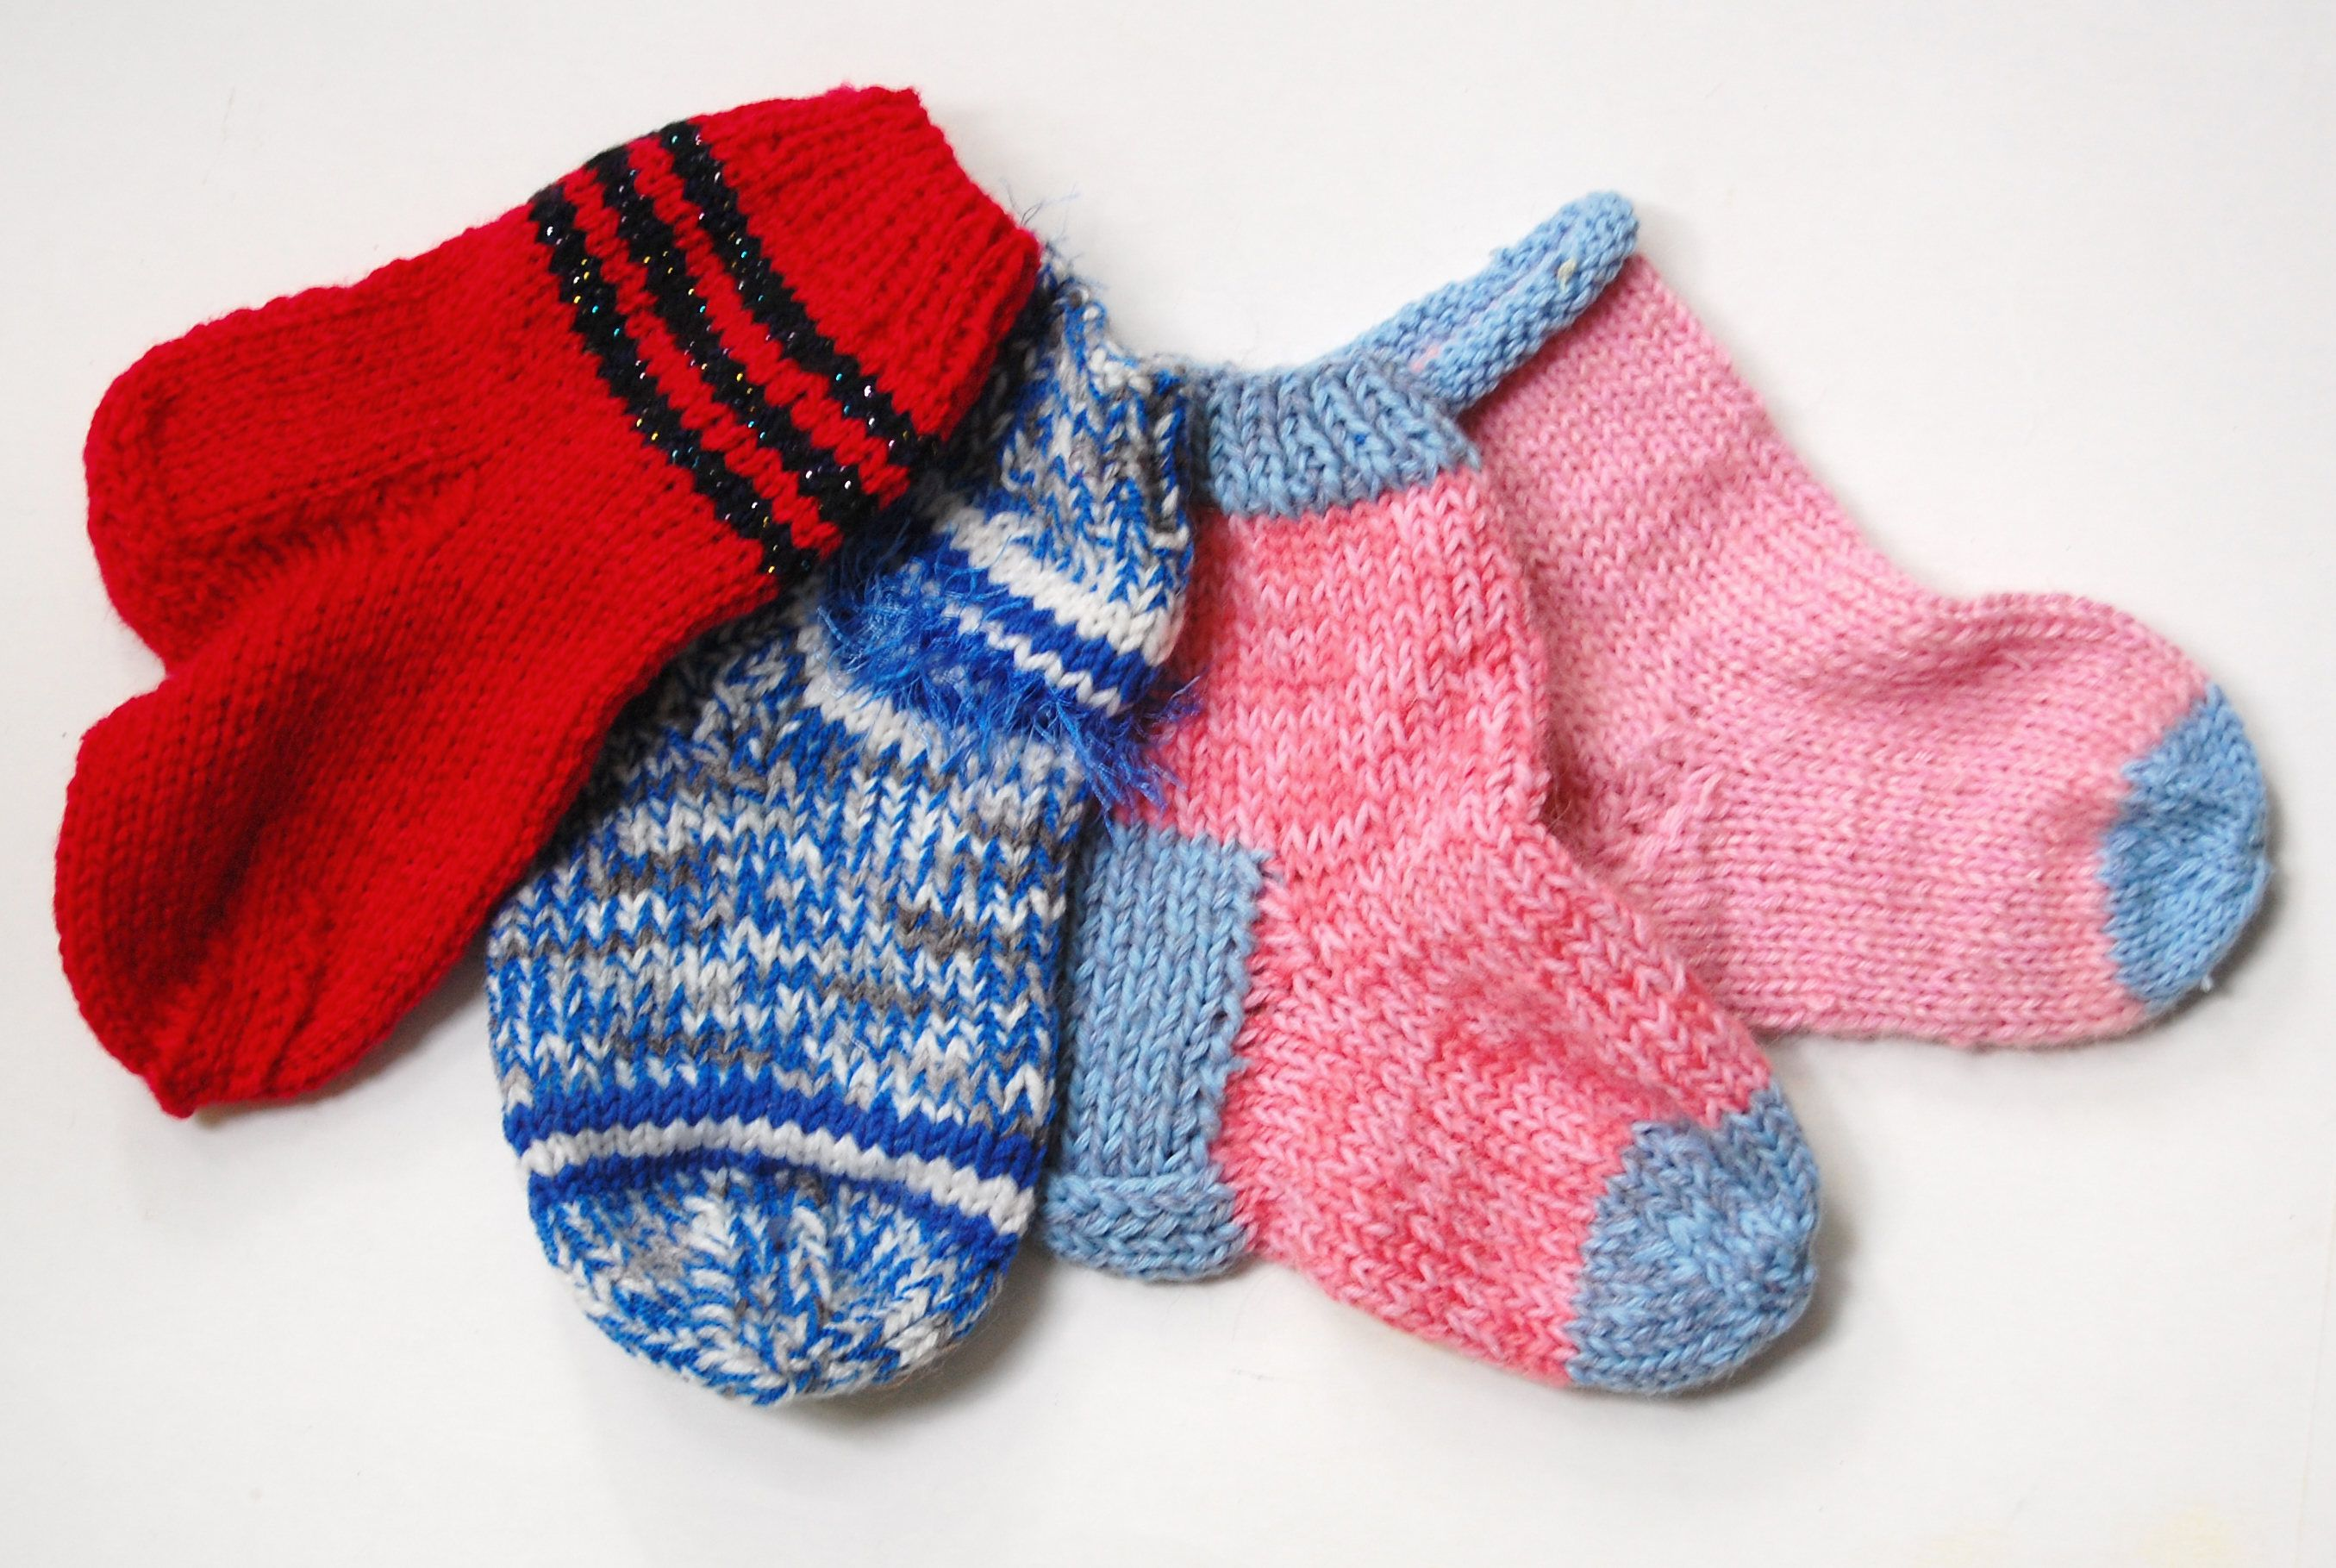 Knitted Baby Socks Wool Baby Socks Knitted Socks Rainbow Socks